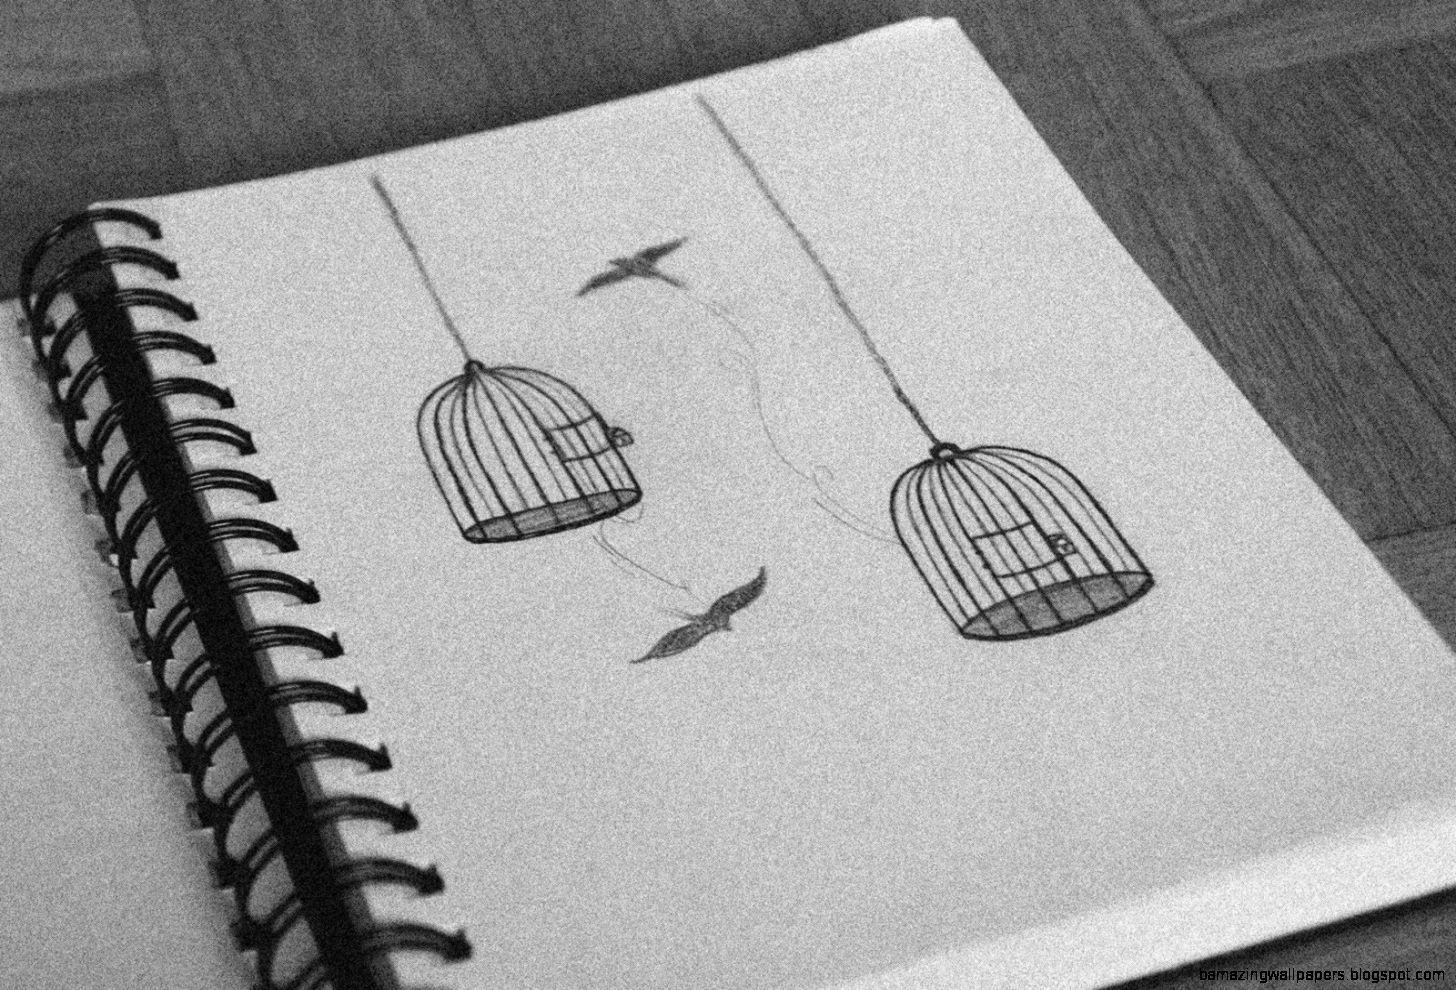 Easy Pencil Drawings Tumblr Amazing Wallpapers Pencil Drawings Tumblr Tumblr Drawings Easy Hipster Drawings In the meantime, i keep copying simple drawings and loving every minute of it. easy pencil drawings tumblr amazing